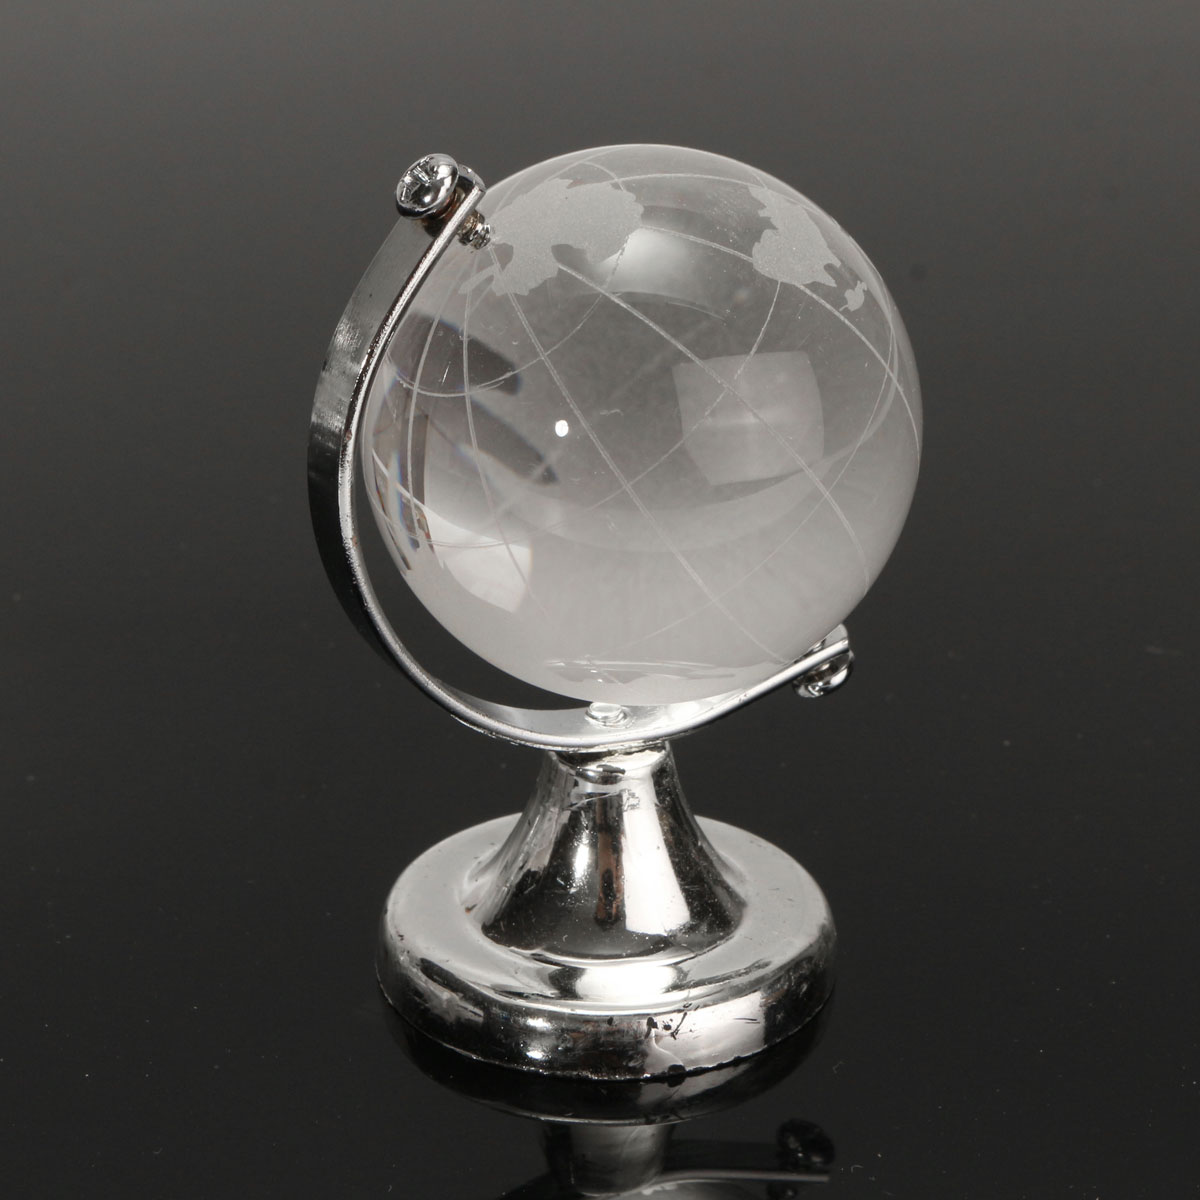 new crystal glass globe paperweight desk decoration clear mapping office gift ebay. Black Bedroom Furniture Sets. Home Design Ideas